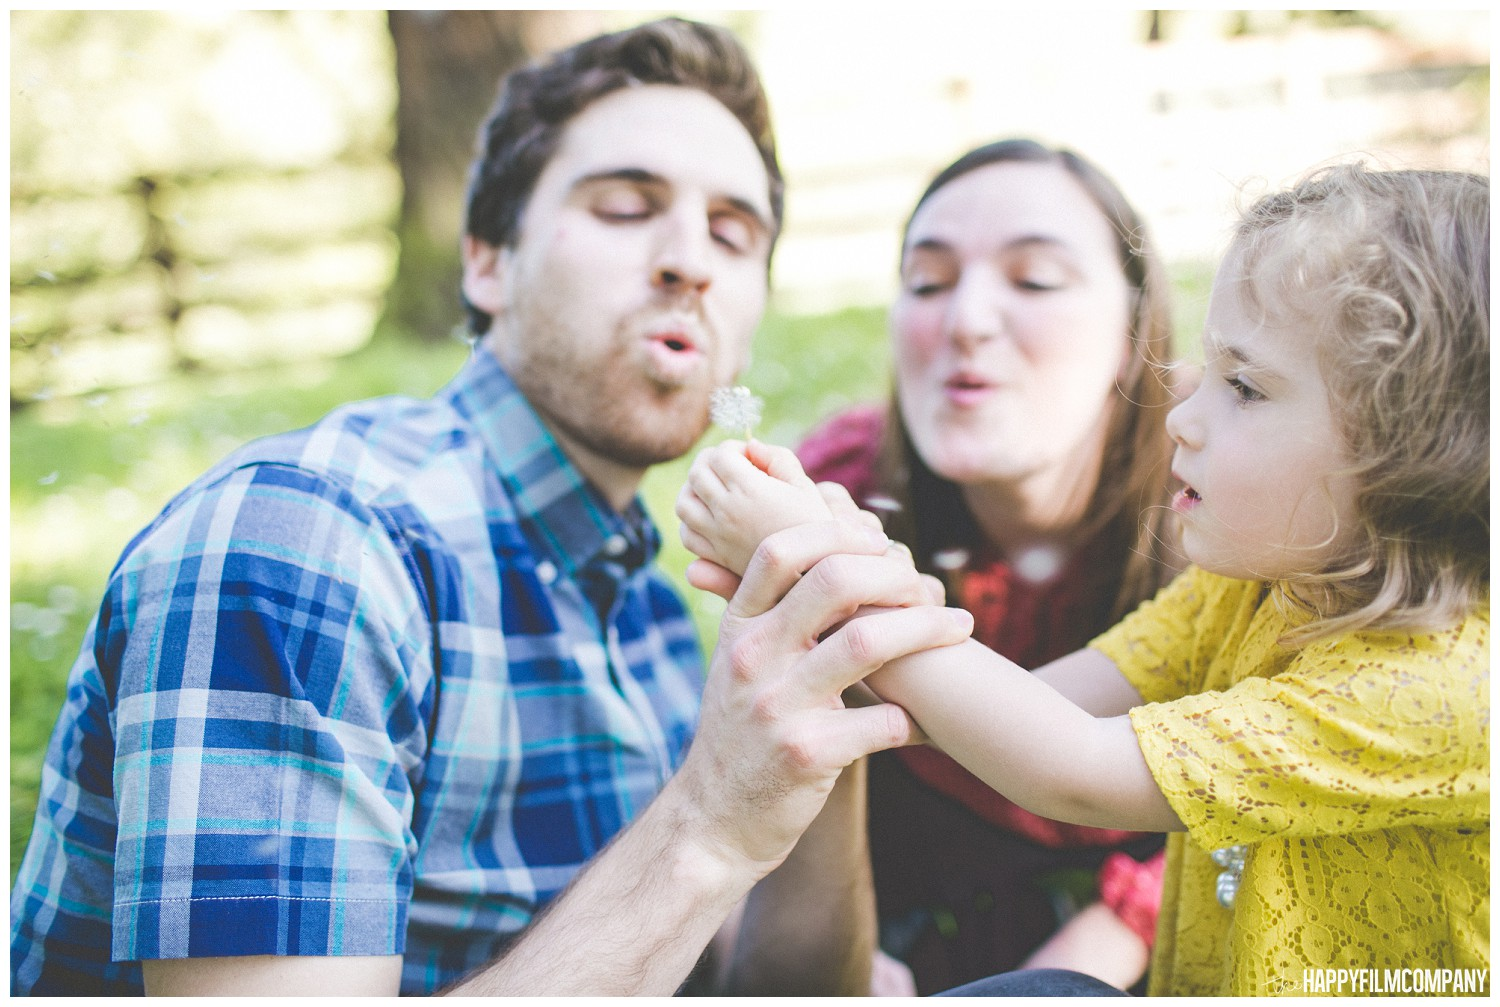 Mom and Dad playing with their little princess - the Happy Film Company - Seattle Family Photography